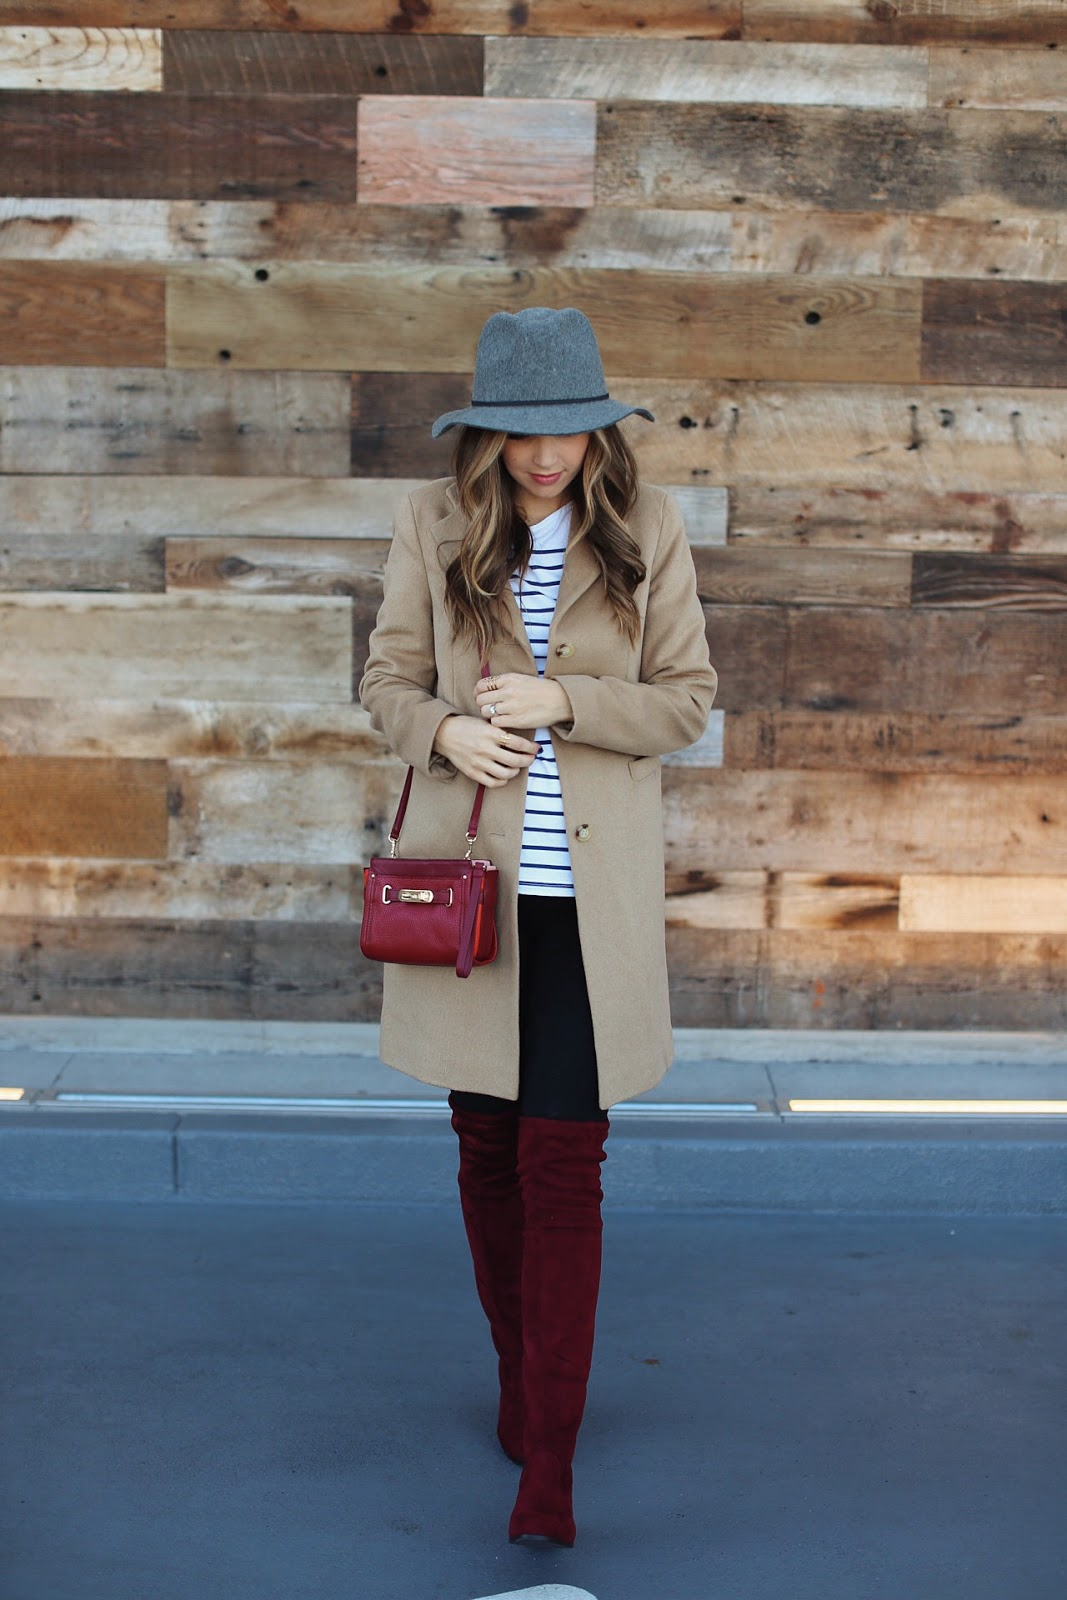 Over the knee boots will look fantastic with a classic camel coat. Merrick demos a pair of red velvet over the knee boots; the perfect tone to match the rest of the look. Coat/Hat: Zappos, Boots: Choies, Shirt: Asos, Bag: Coach.